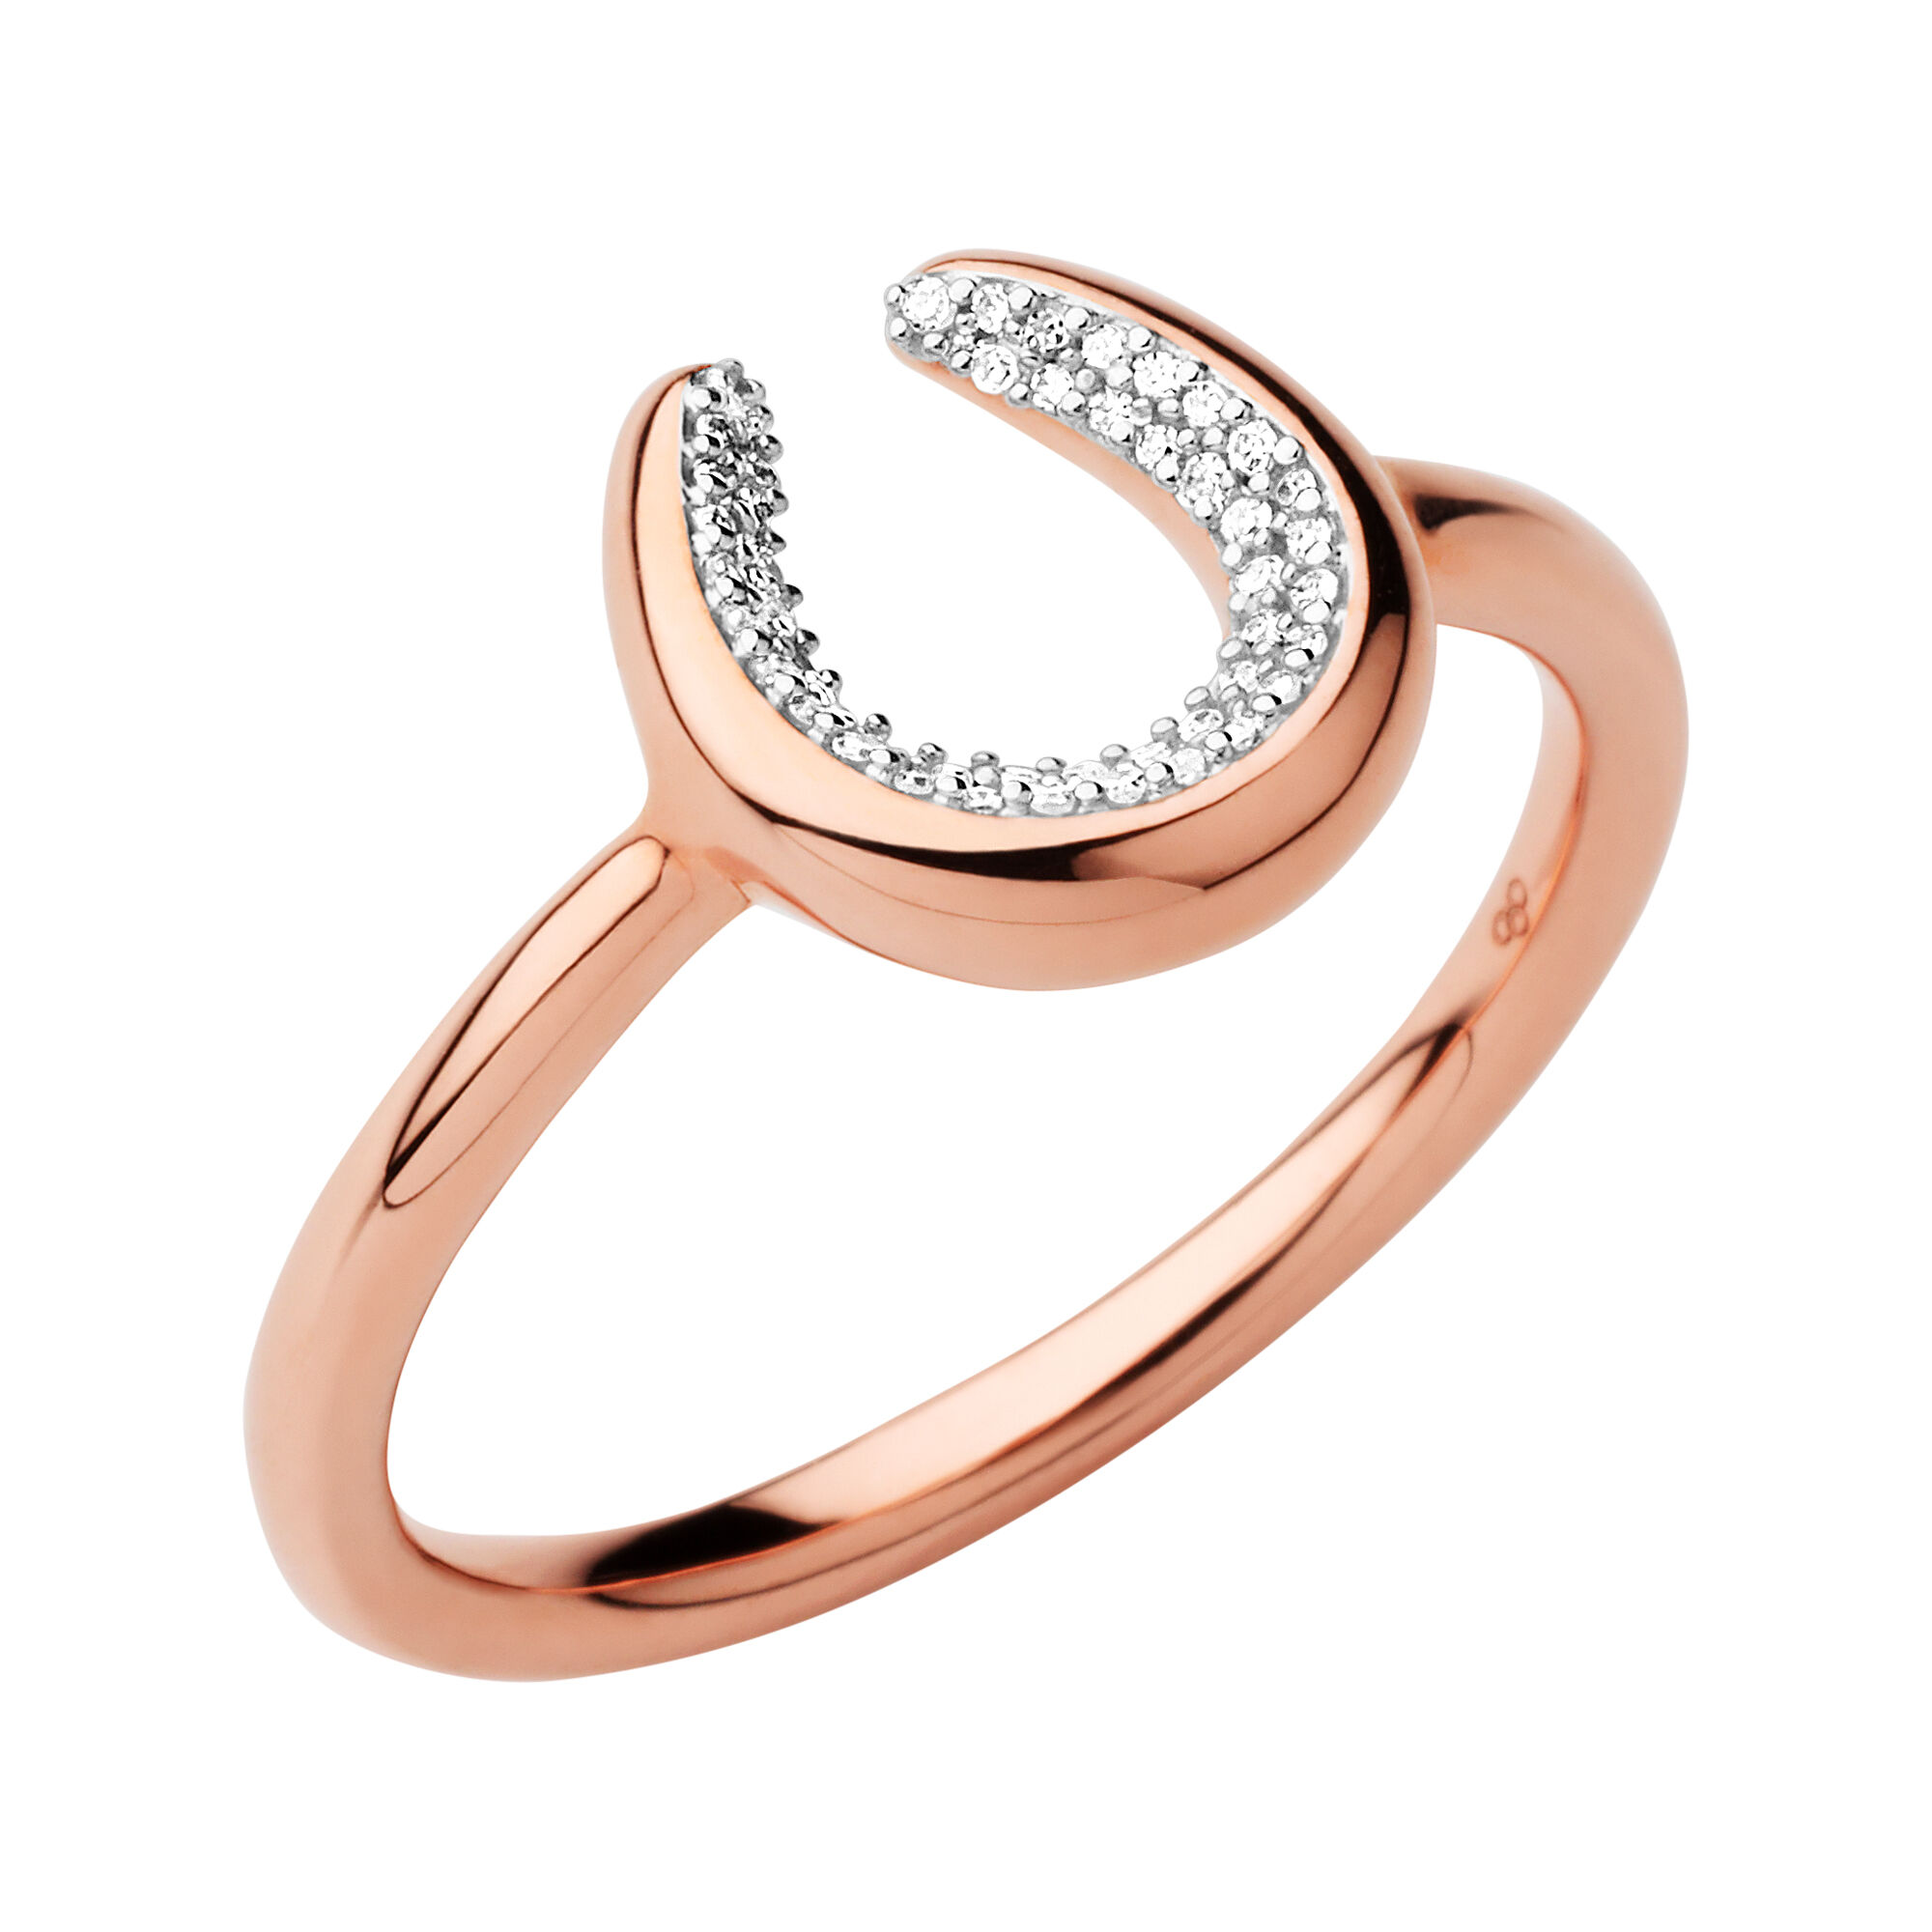 s bands with the halo ring diamond band two engagement perfect i wedding cushion gold pin but rose want